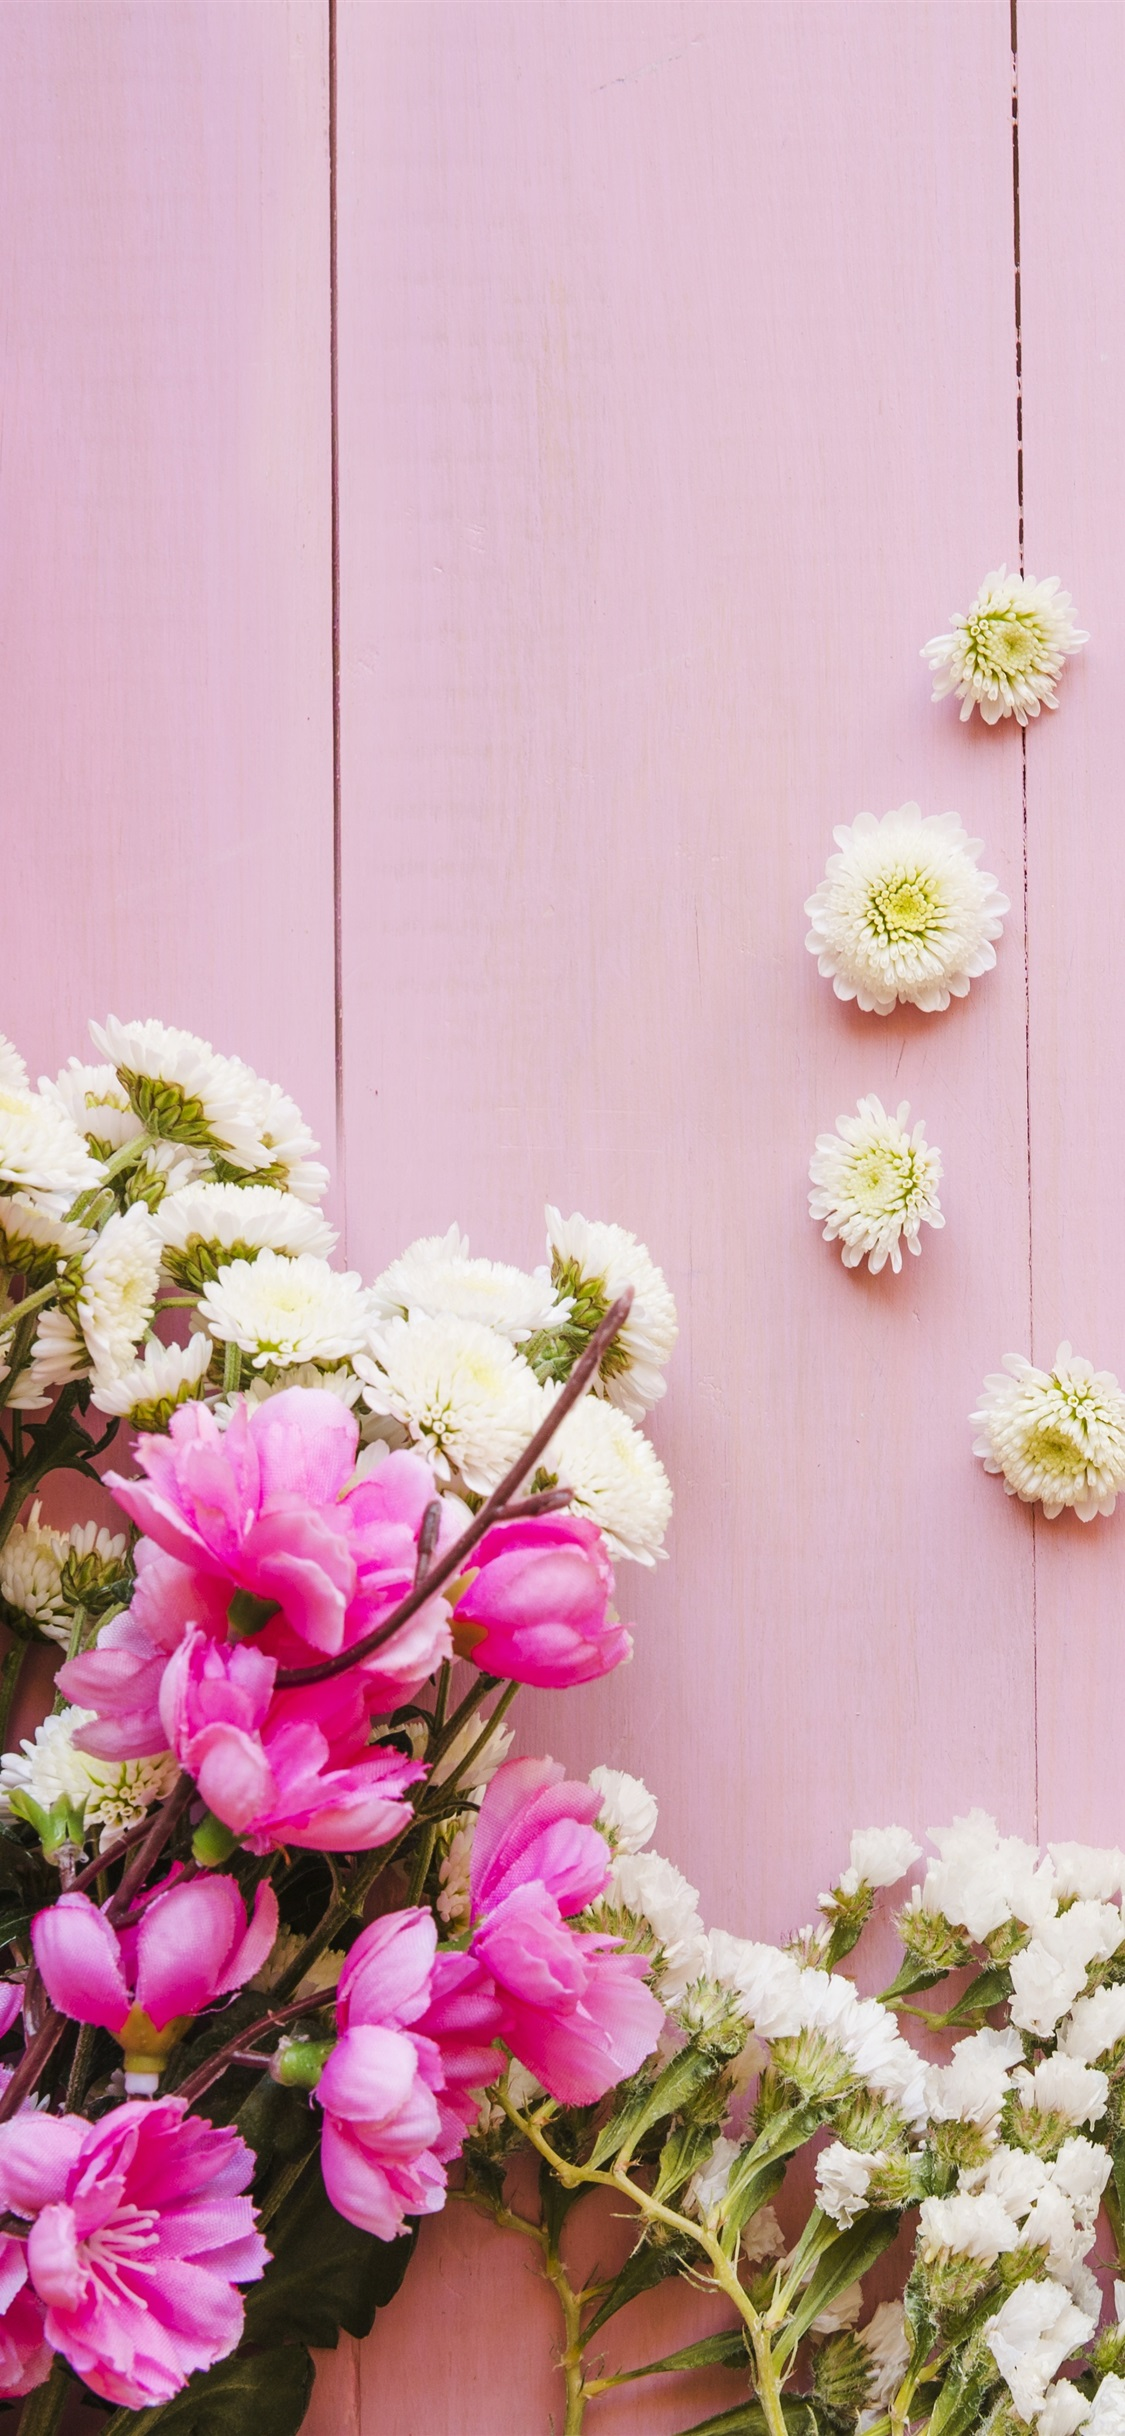 Pink and white flowers, wood background 1125x2436 iPhone XS